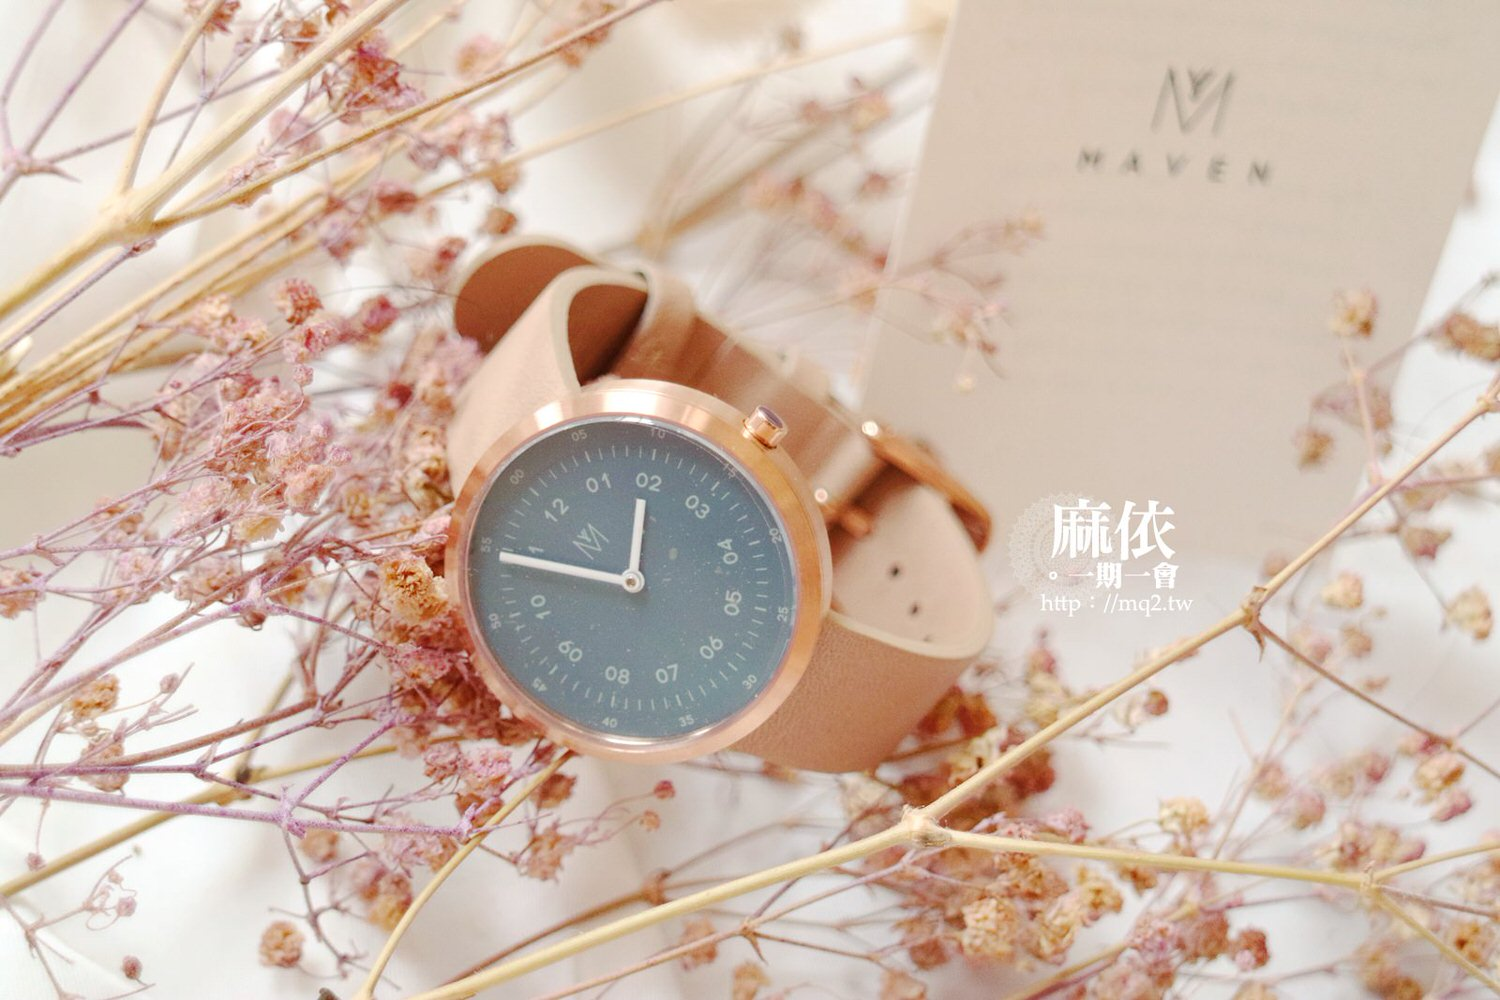 mavenwatches